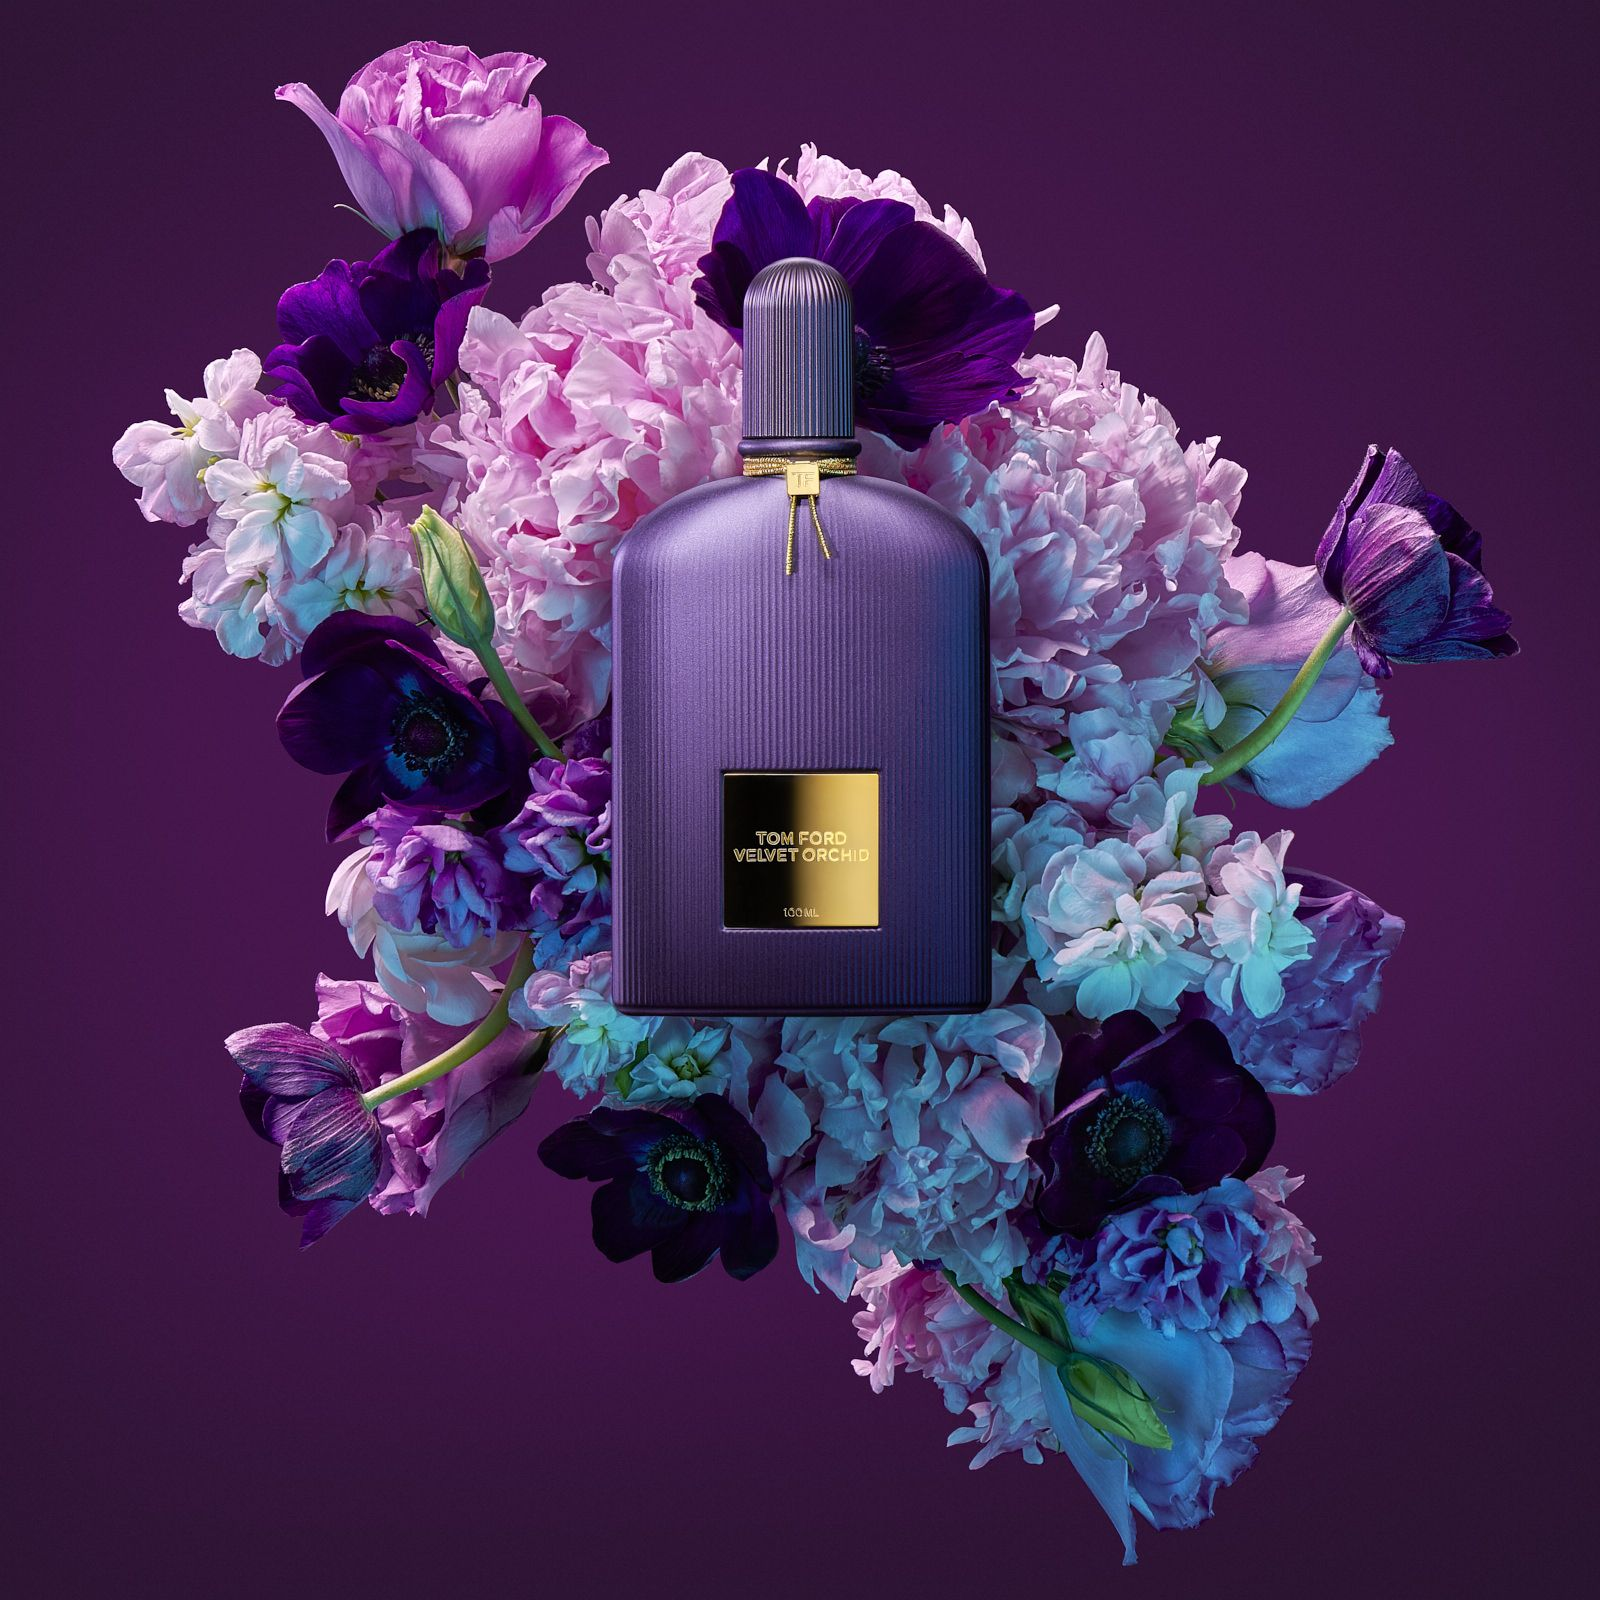 Tom Ford Velvet Orchid By Luxury Brand Photographer Matthew Roharik Los Angeles Floral Styling By Jessica Stew Fragrance Photography Beauty Advertising Perfume